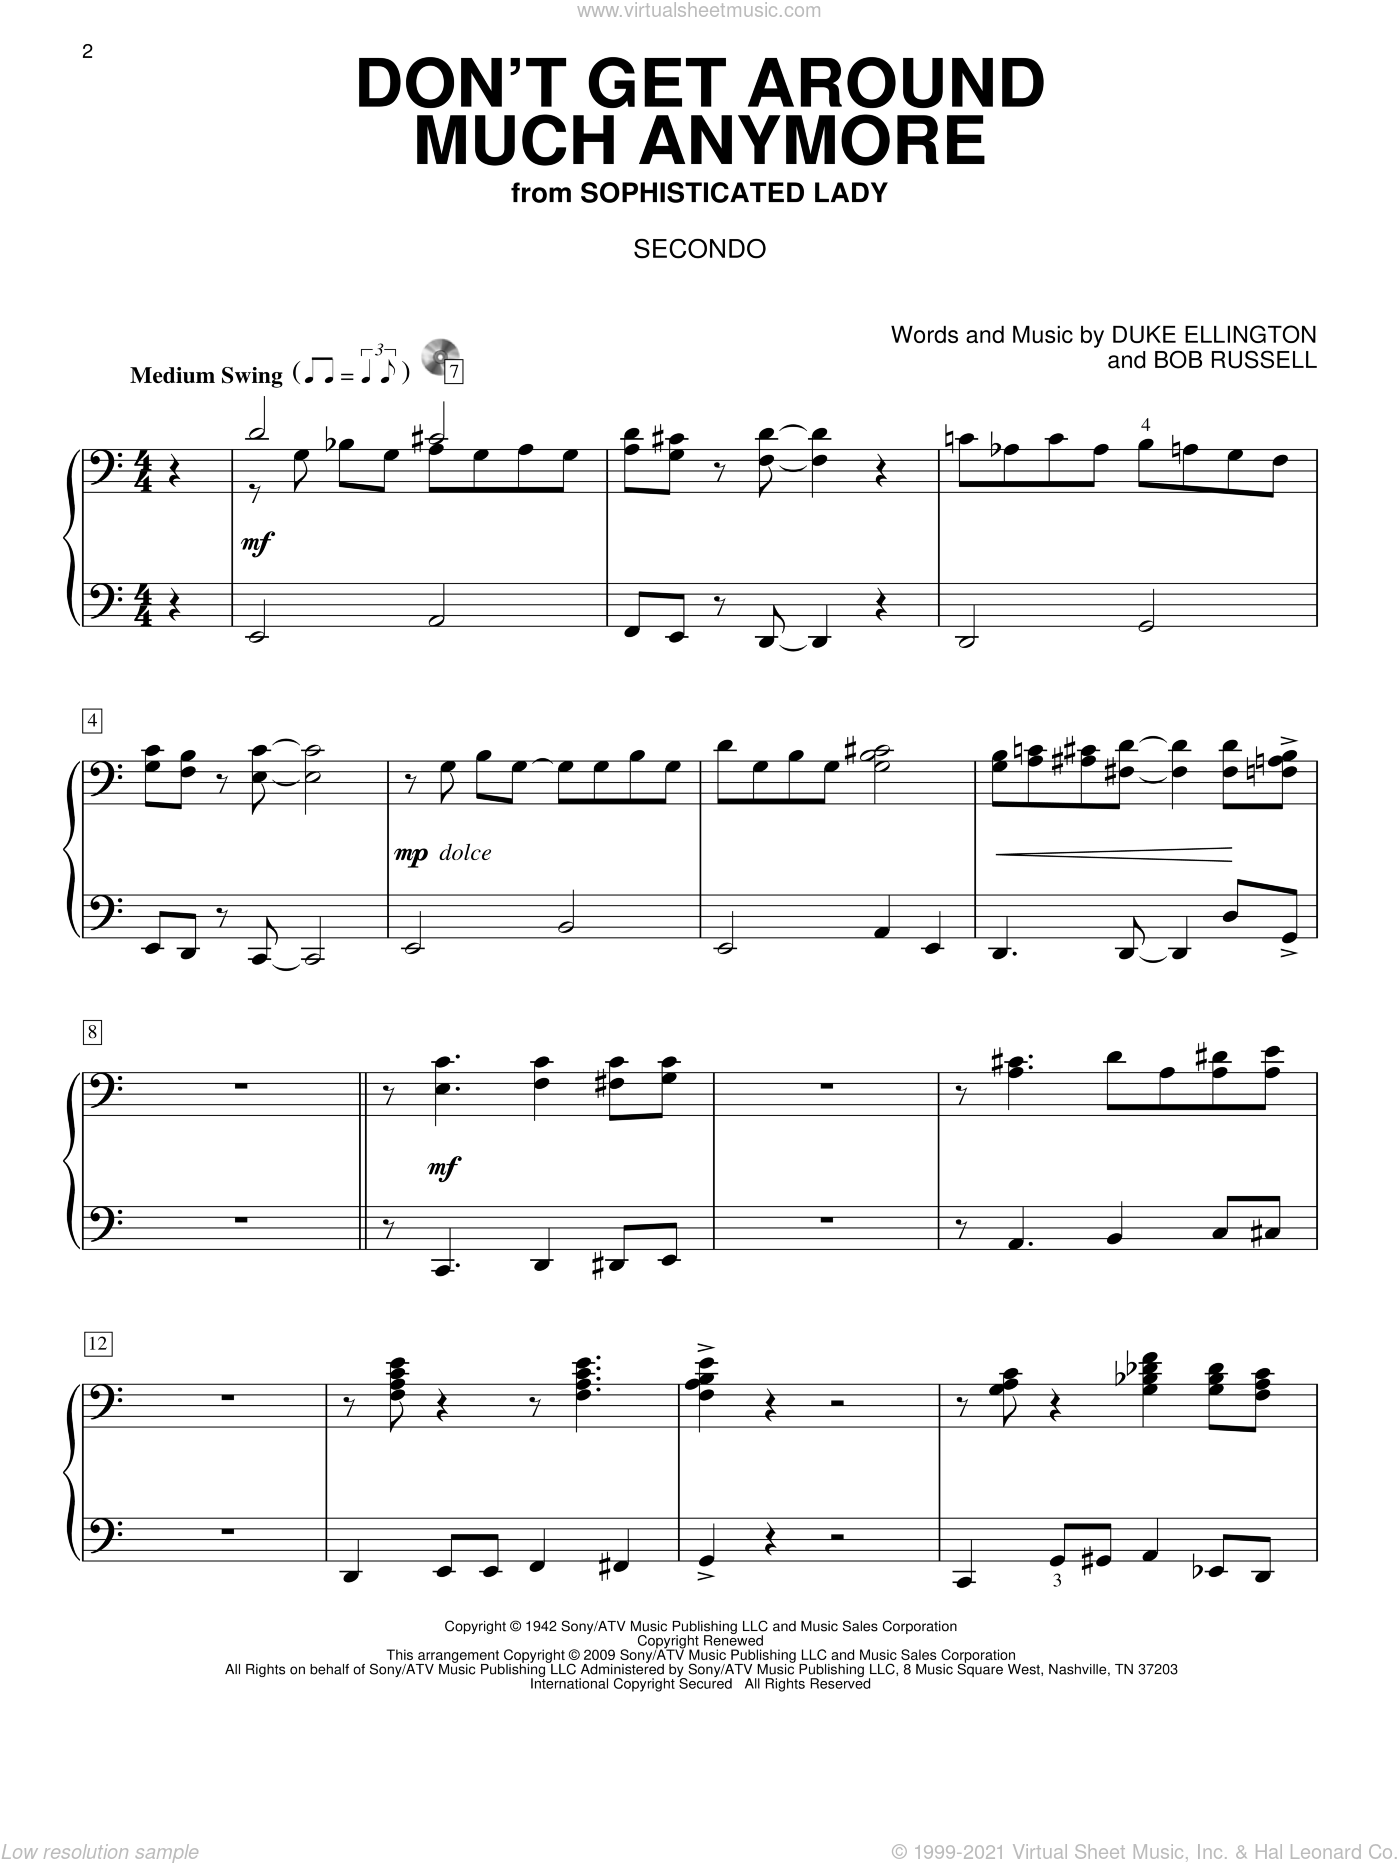 Don't Get Around Much Anymore sheet music for piano four hands (duets) by Bob Russell and Duke Ellington